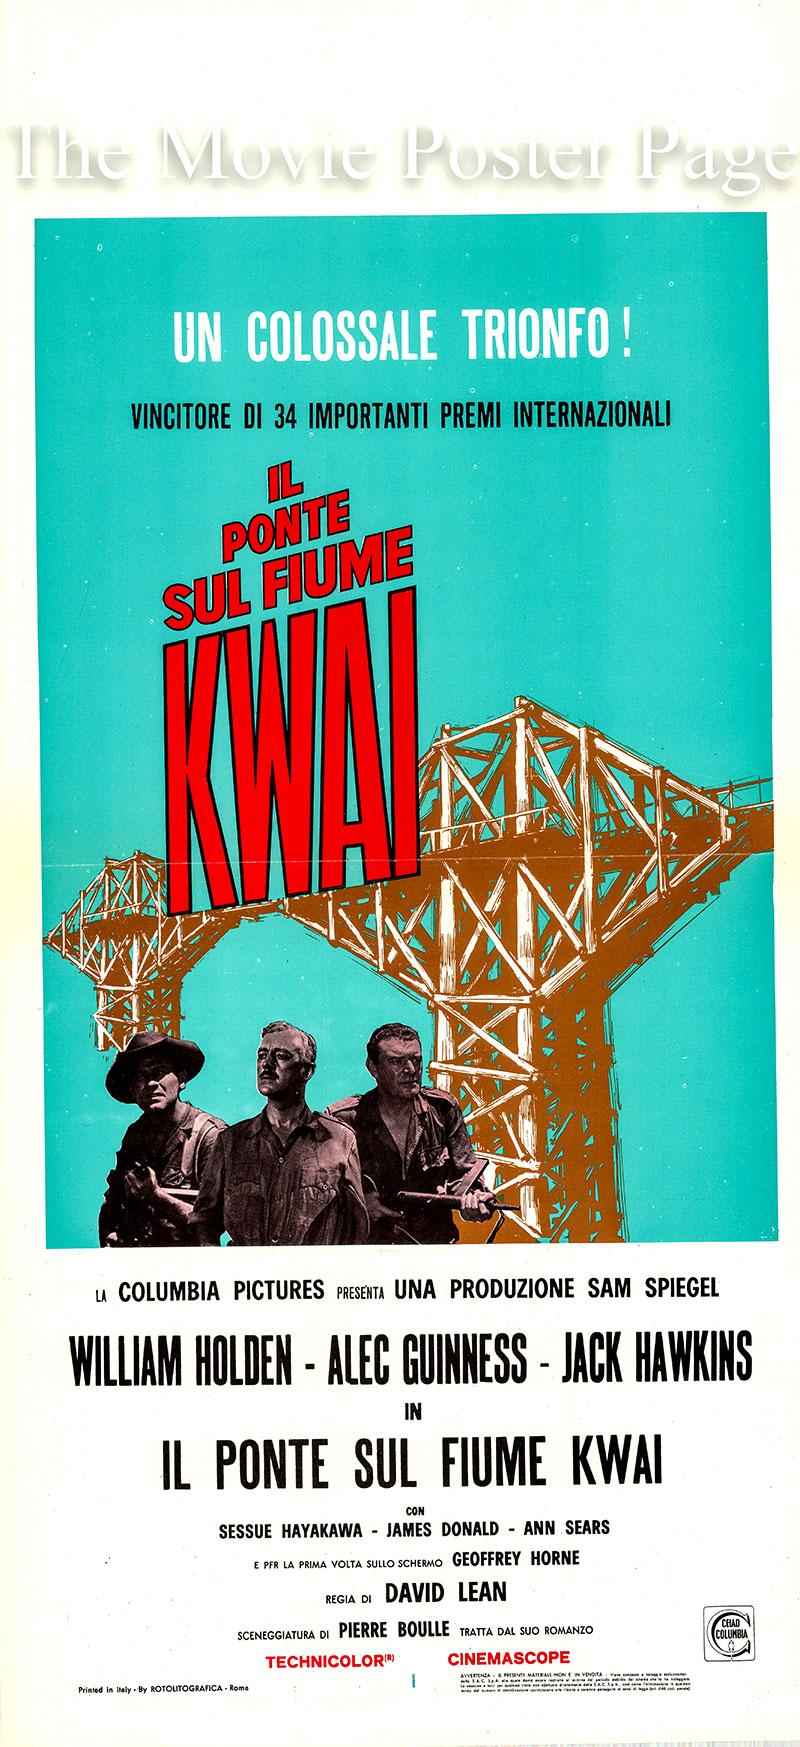 Pictured is an Italian locandina promotional poster for a 1960s rerelease of the 1957 David Lean film The Bridge on the River Kwai starring William Holden.